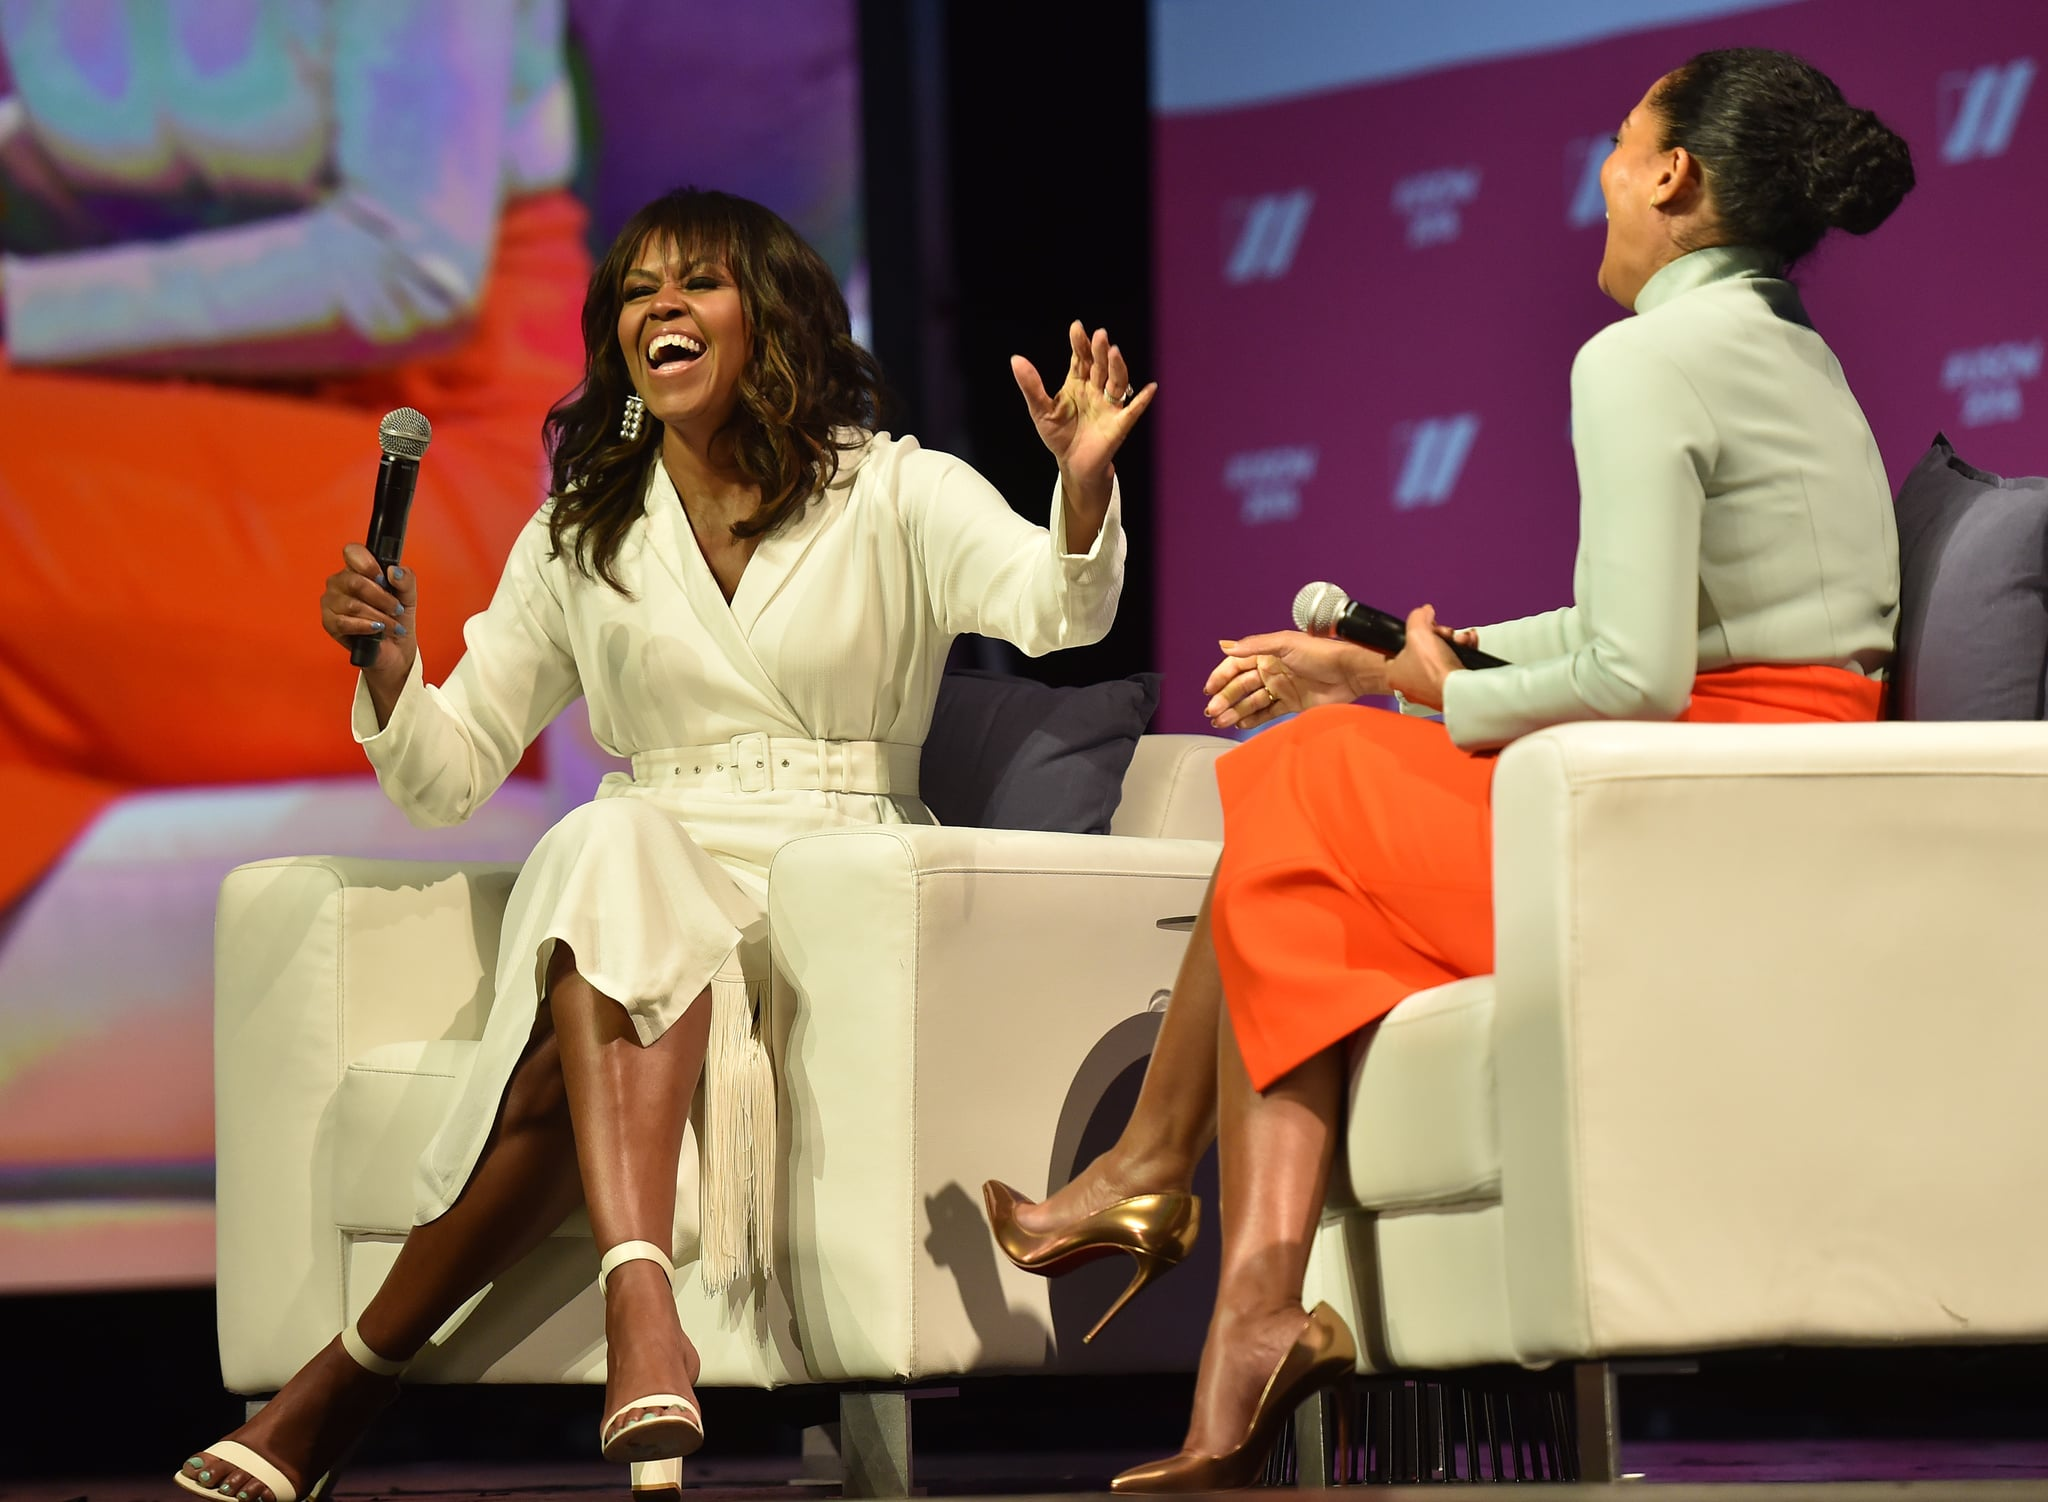 Former US first lady Michelle Obama (L) and actress/activist Tracee Lee Ross attend the United State of Women Summit at the Shrine Auditorium in Los Angeles, on May 5, 2018. (Photo by CHRIS DELMAS / AFP)        (Photo credit should read CHRIS DELMAS/AFP/Getty Images)